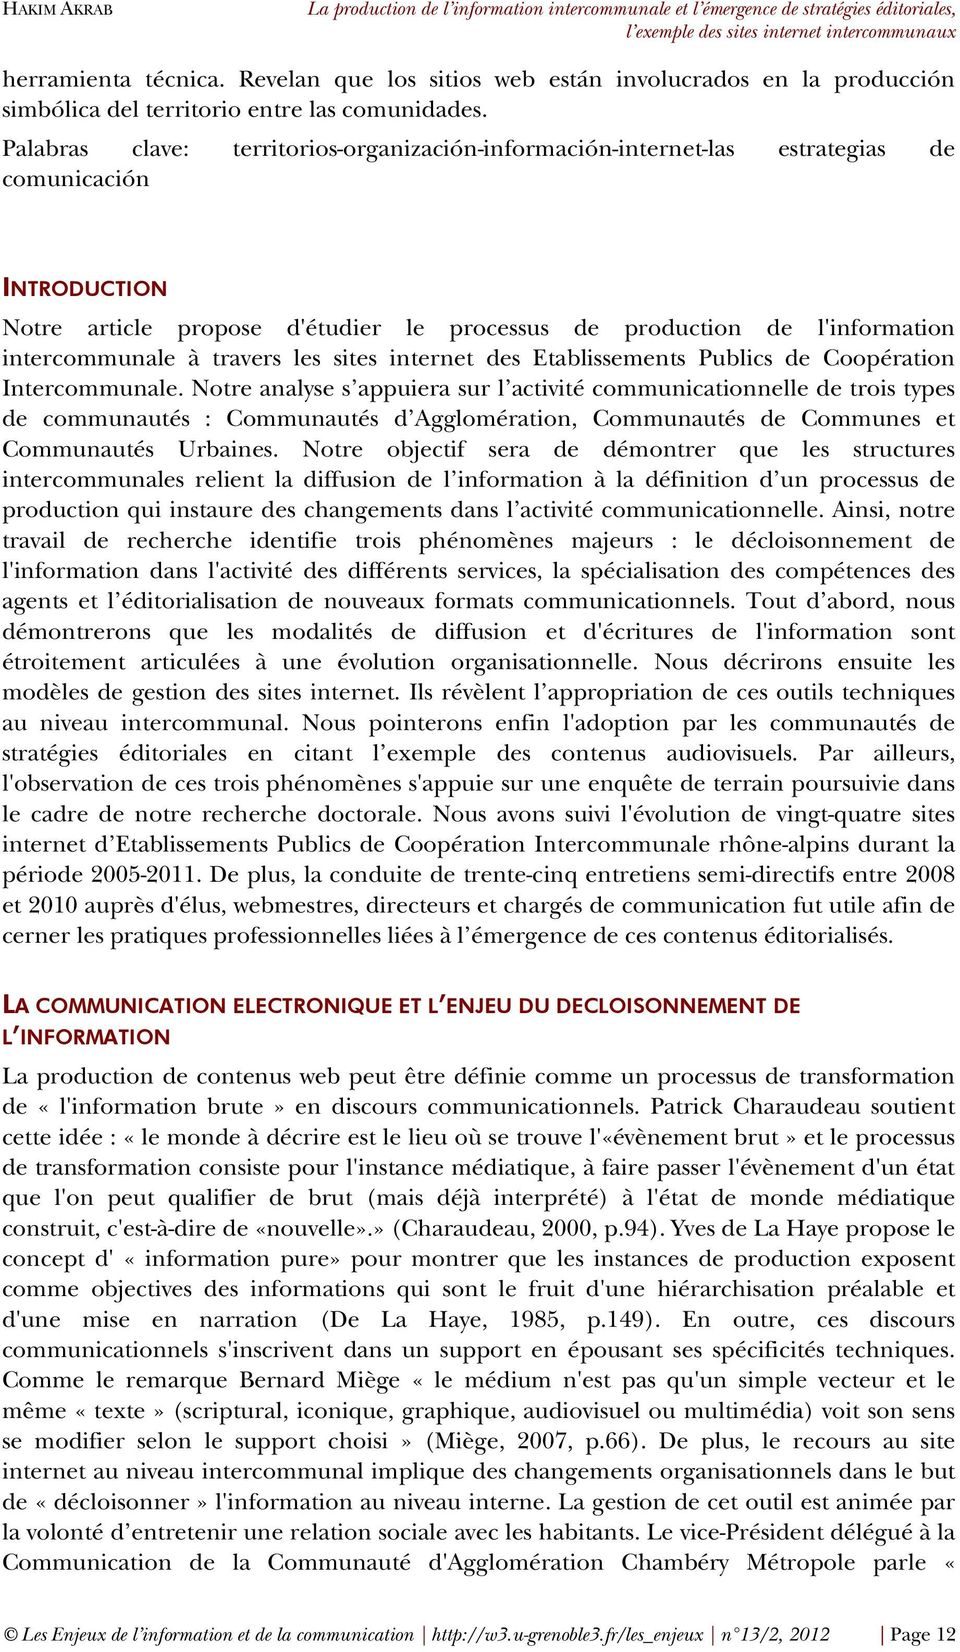 Palabras clave: territorios-organización-información-internet-las estrategias de comunicación INTRODUCTION Notre article propose d'étudier le processus de production de l'information intercommunale à